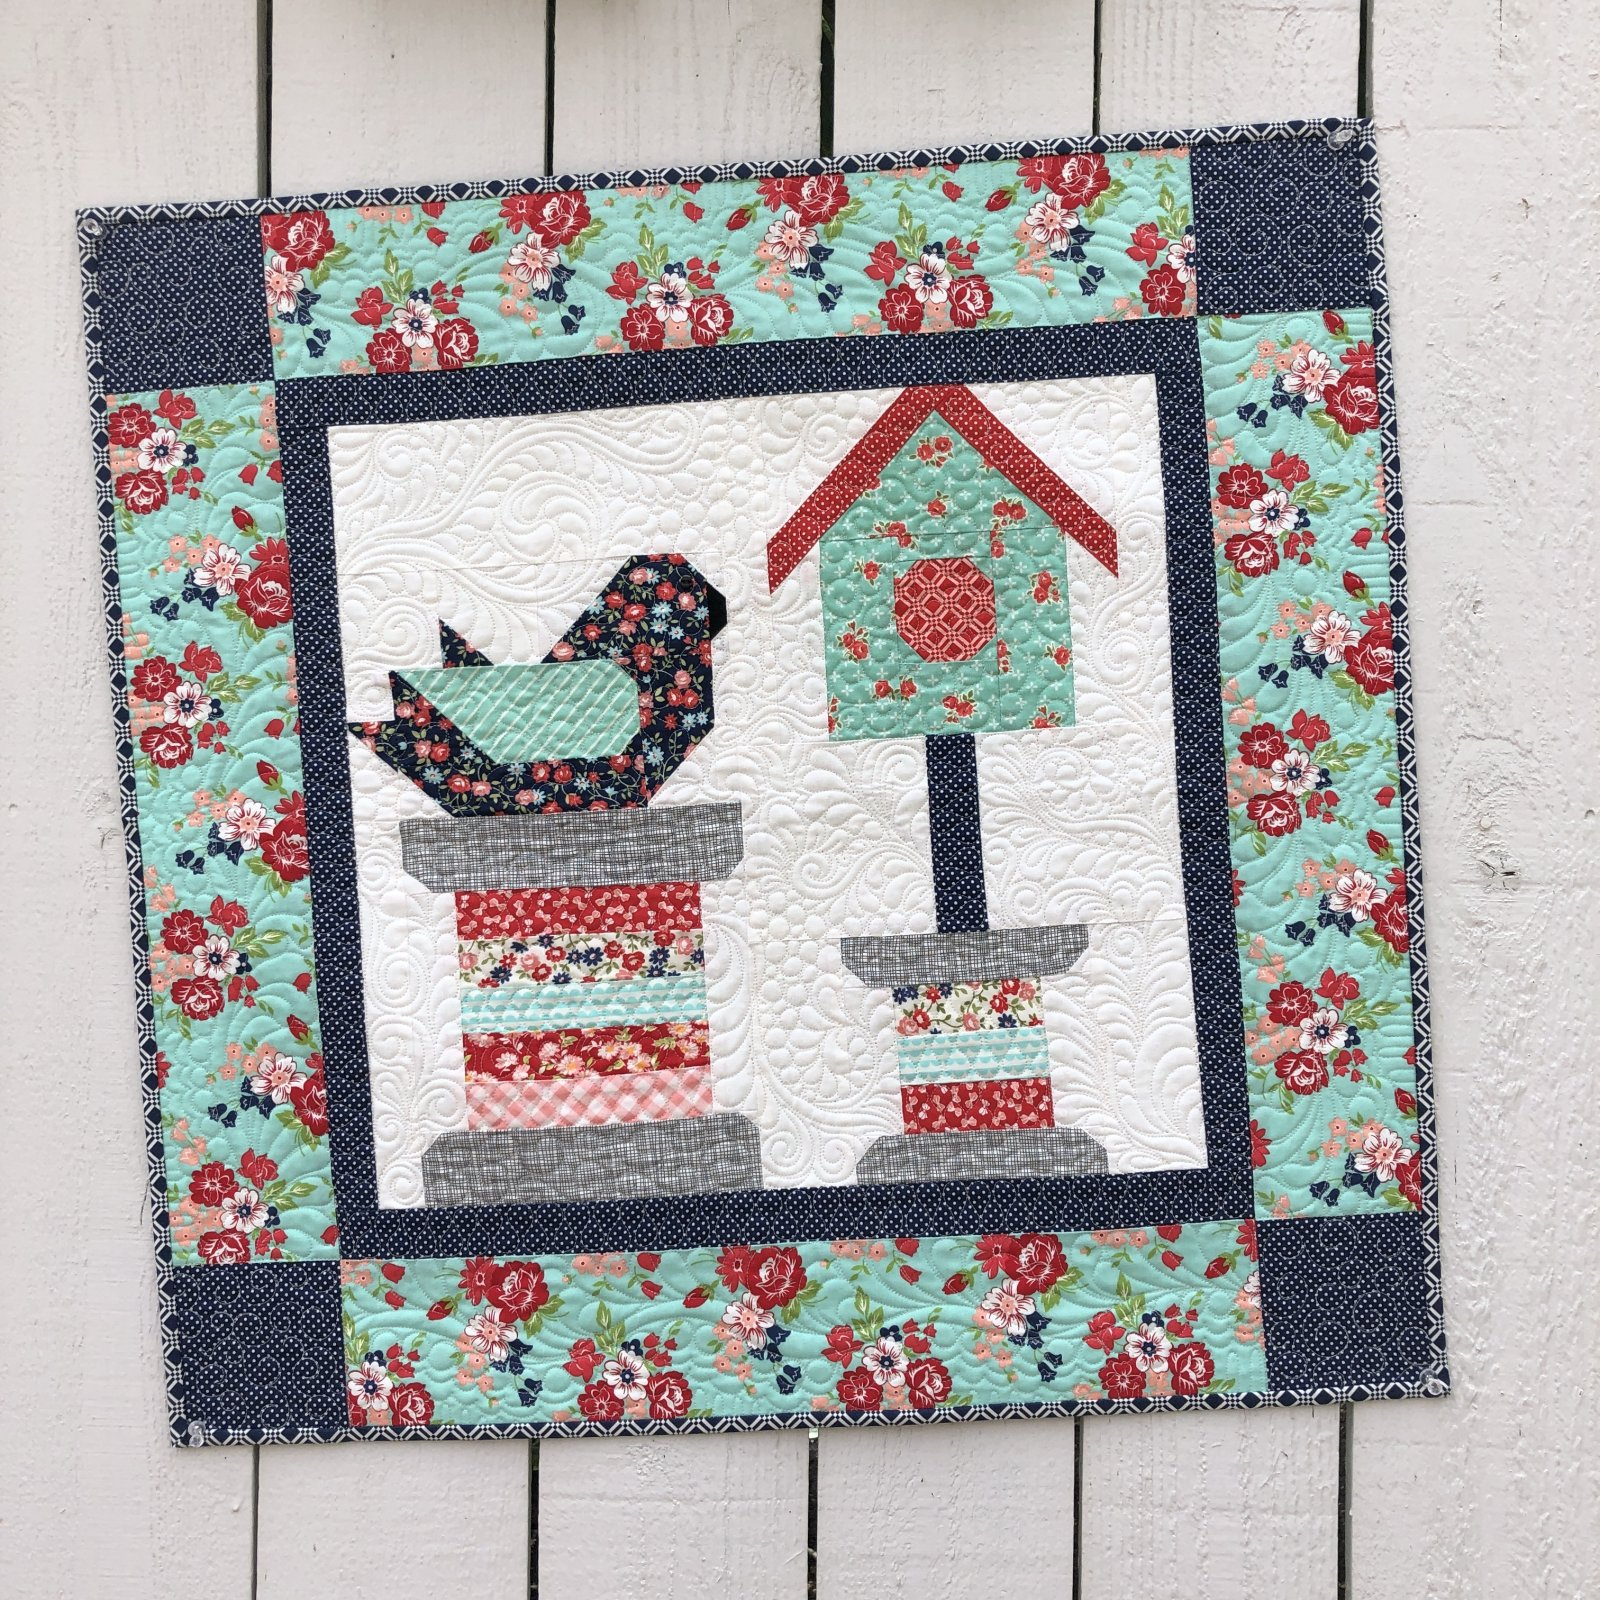 Feathered Friends Quilt Kit